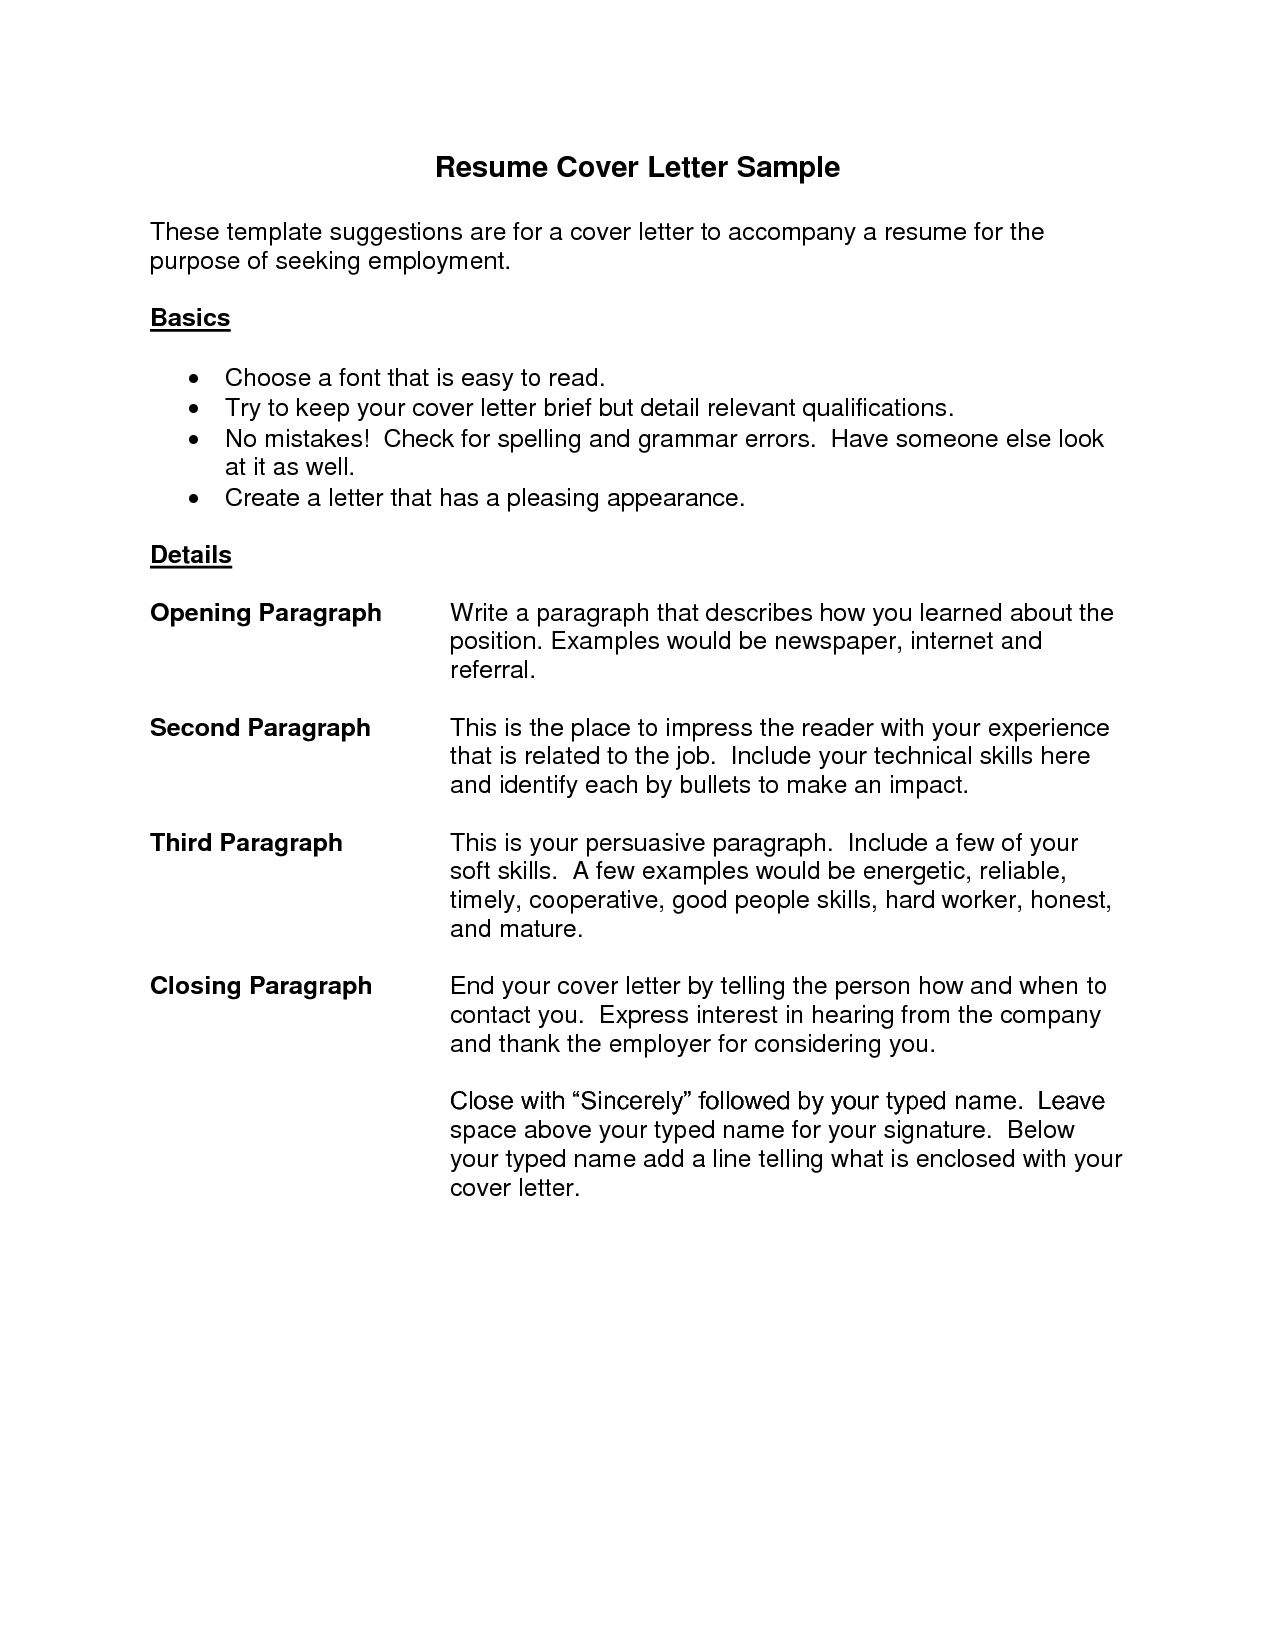 skills list for resume resume cover letter template resume 2add45684334b92f0b0529751013a293 311452130470657435 resume cover letters templates - Example Of Cv Covering Letter